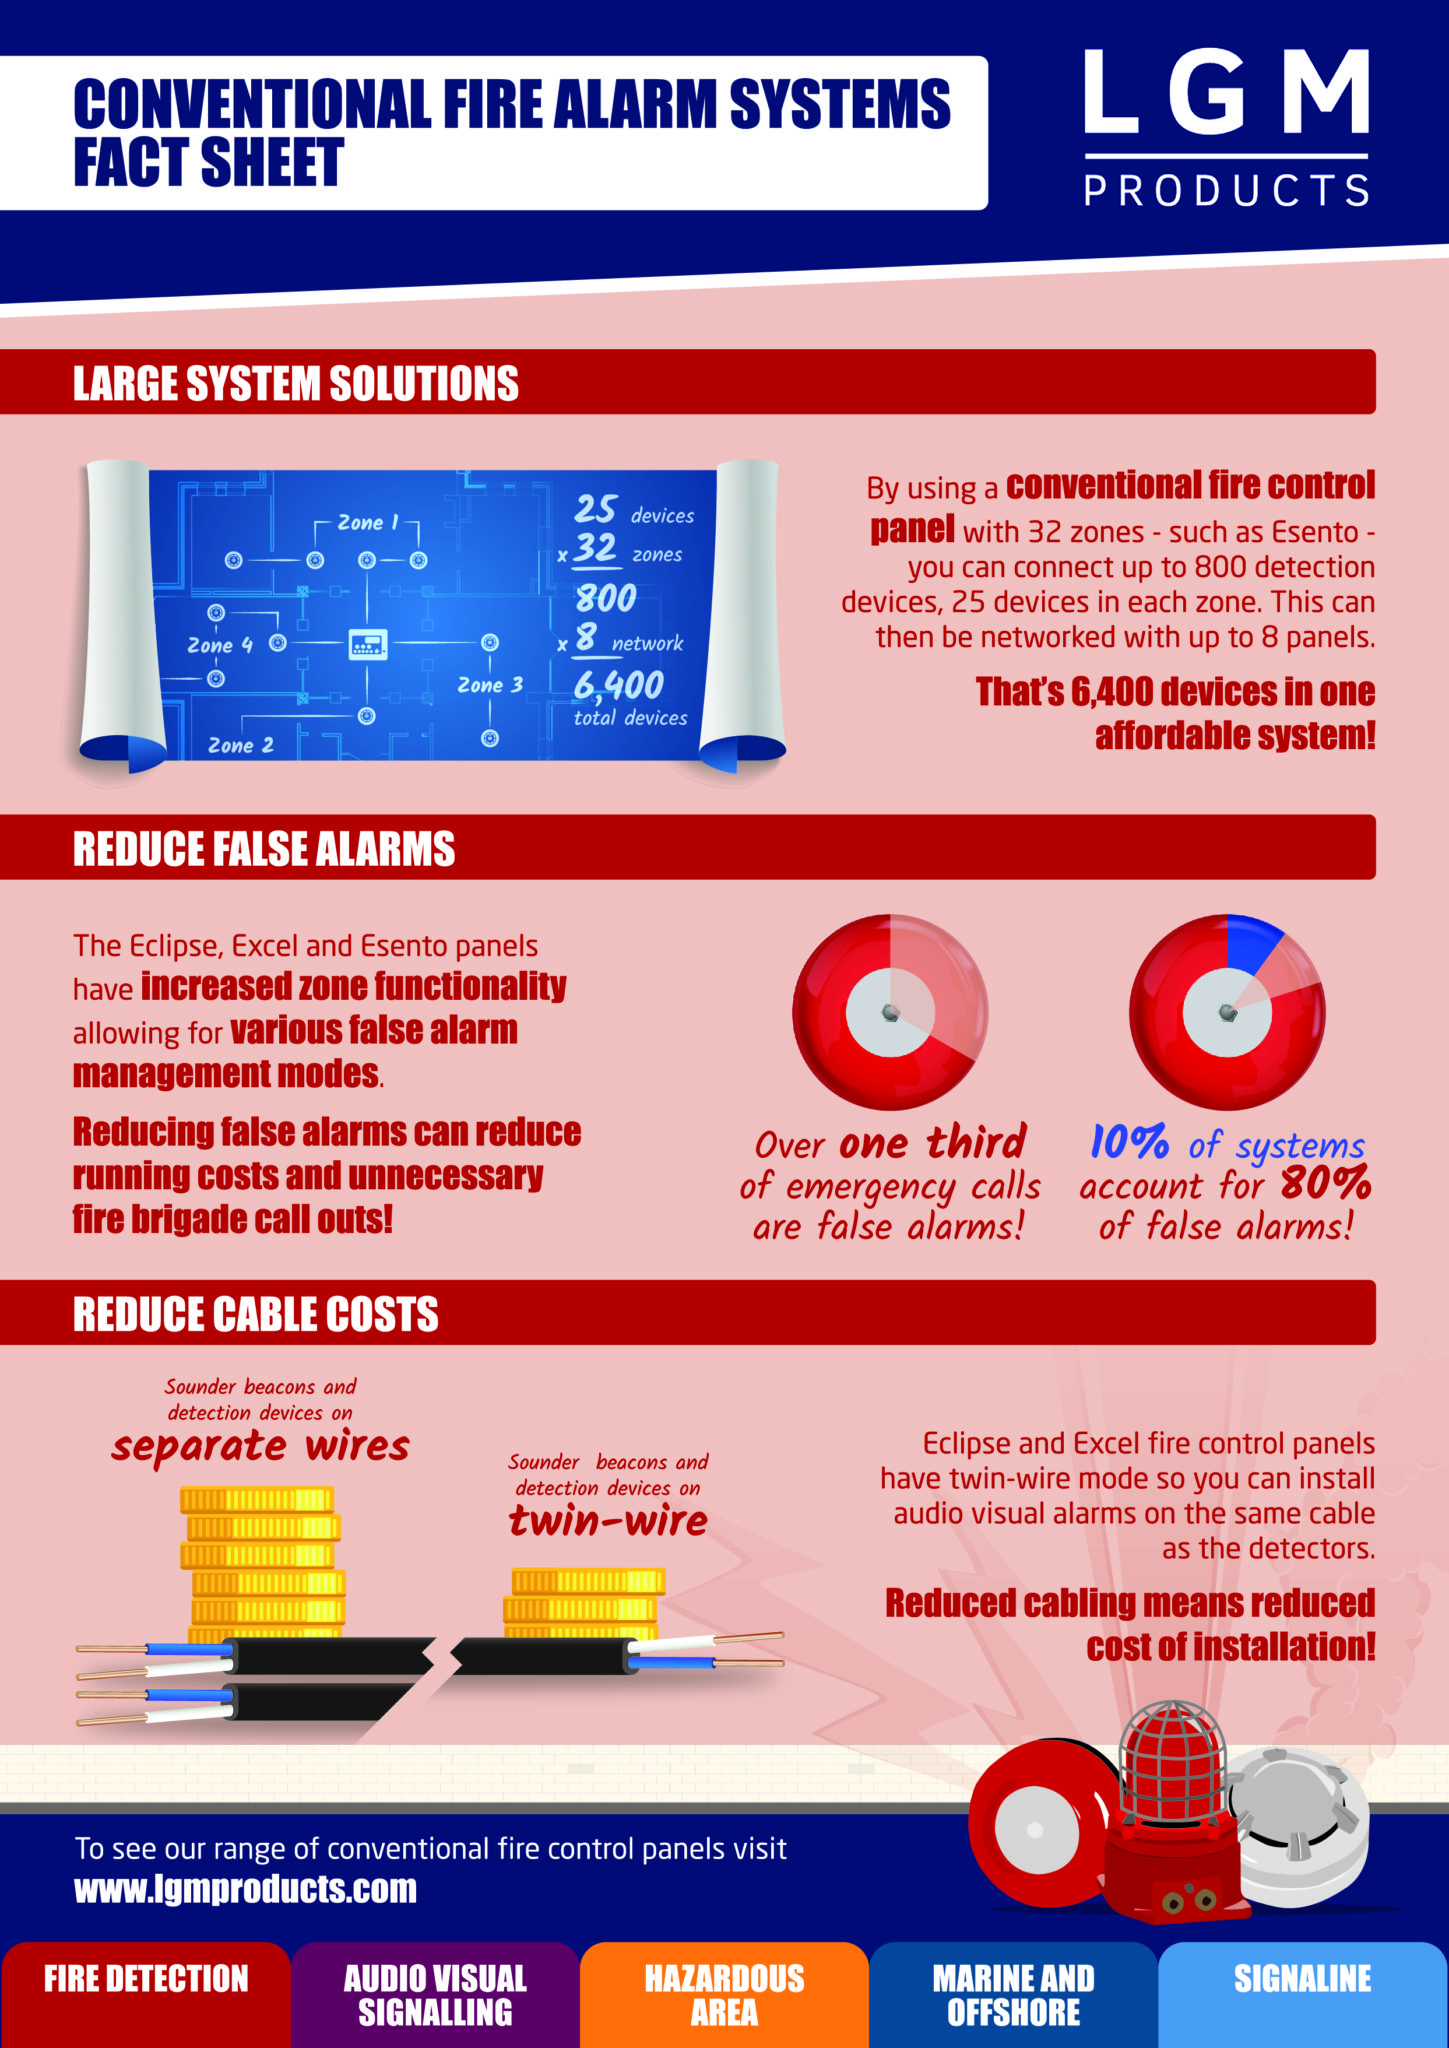 Conventional Fire Alarm Systems myth buster LGM Products